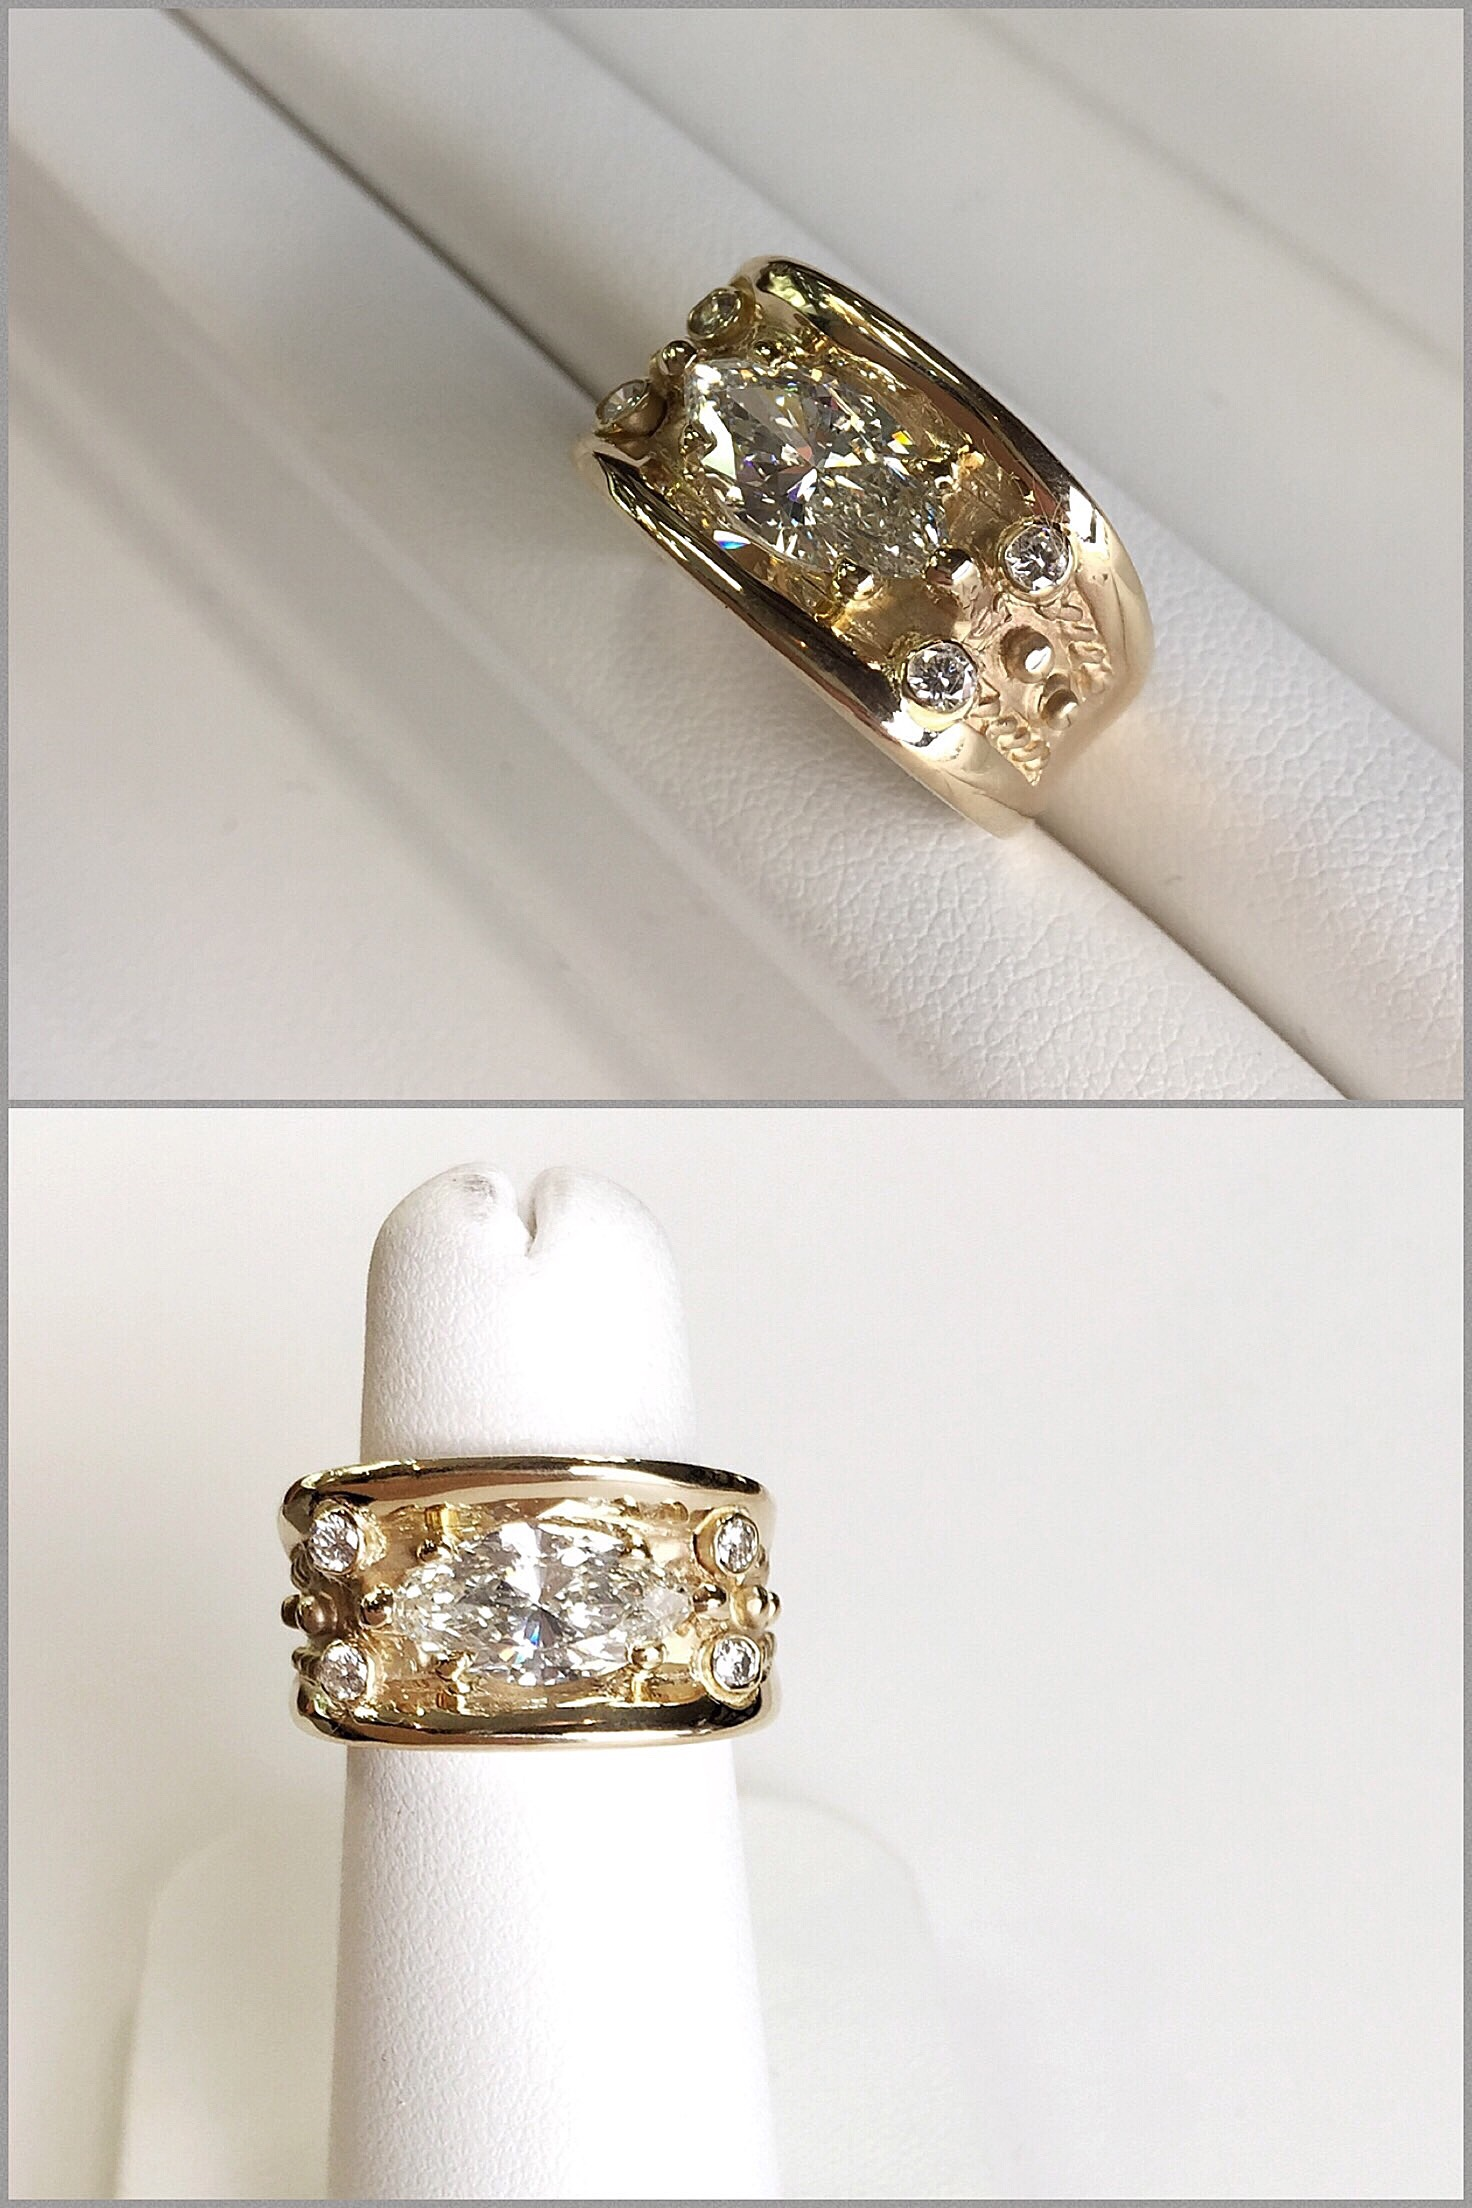 18K Yellow Gold Custom Made Ring With 2 Carat Total Weight Marquise in Center.